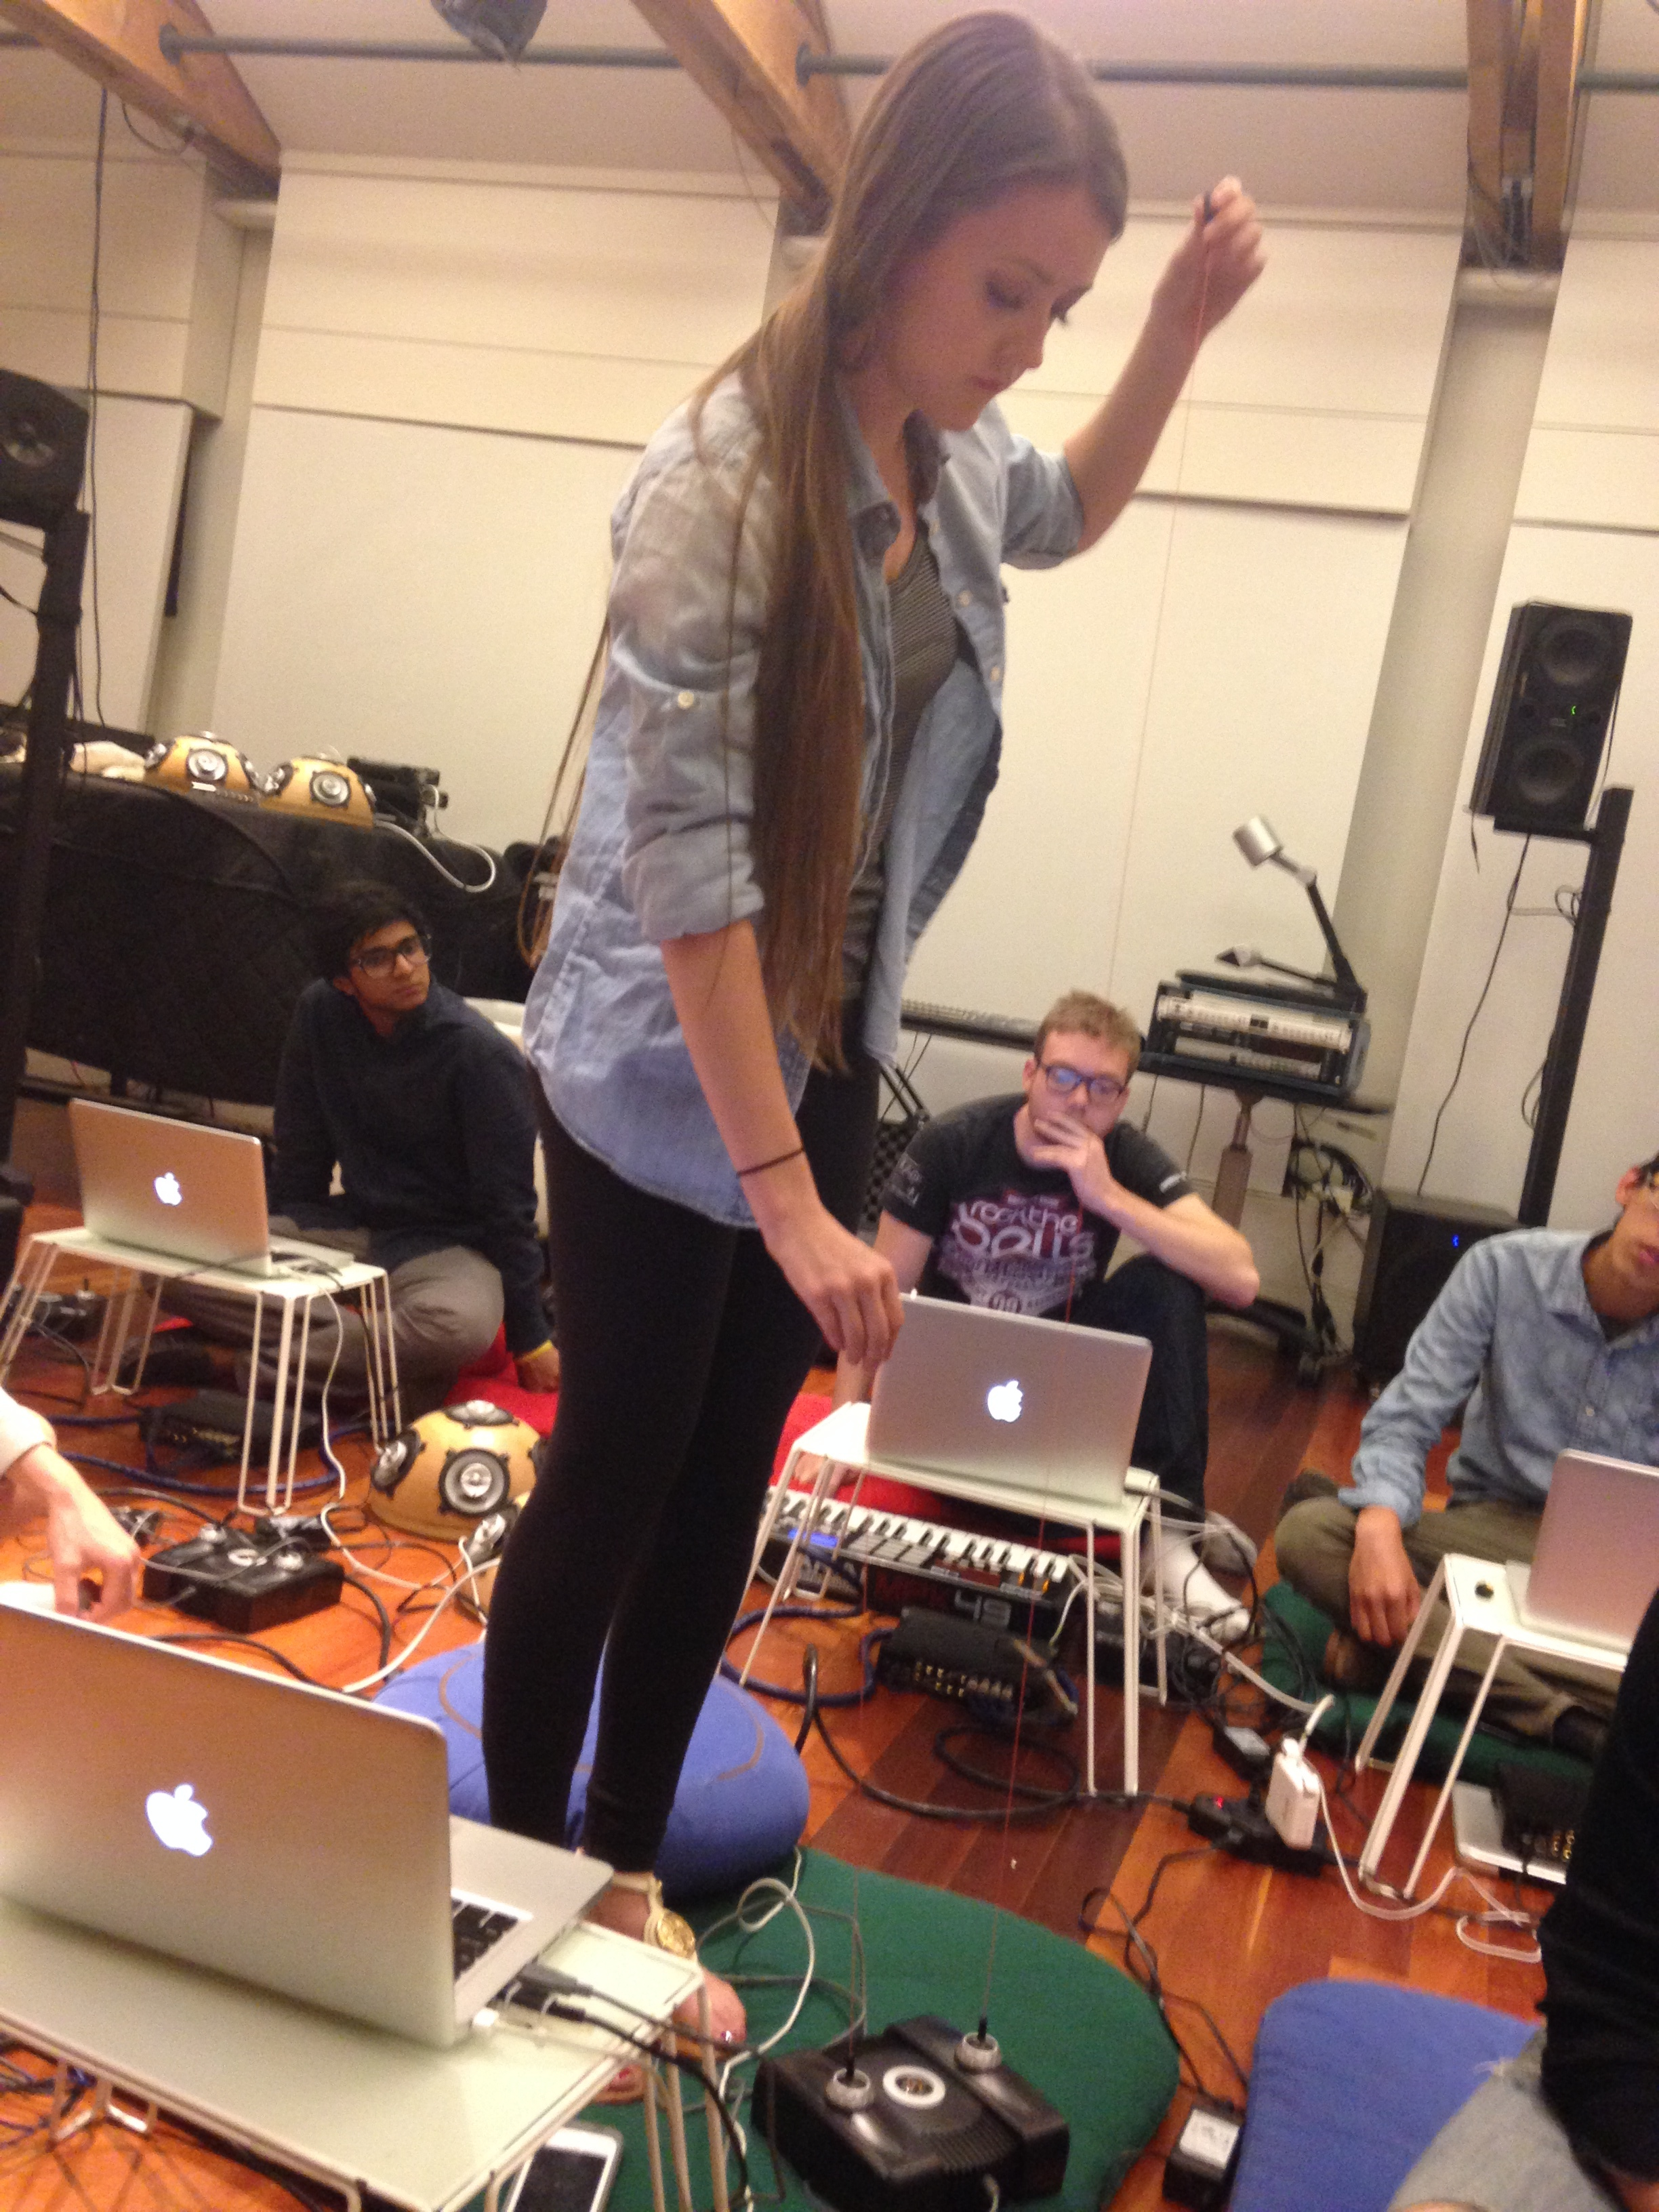 Erica Fearon demonstrates a piece of music she composed on her laptop. She programmed the cables to make different sounds when she moved them in different directions.